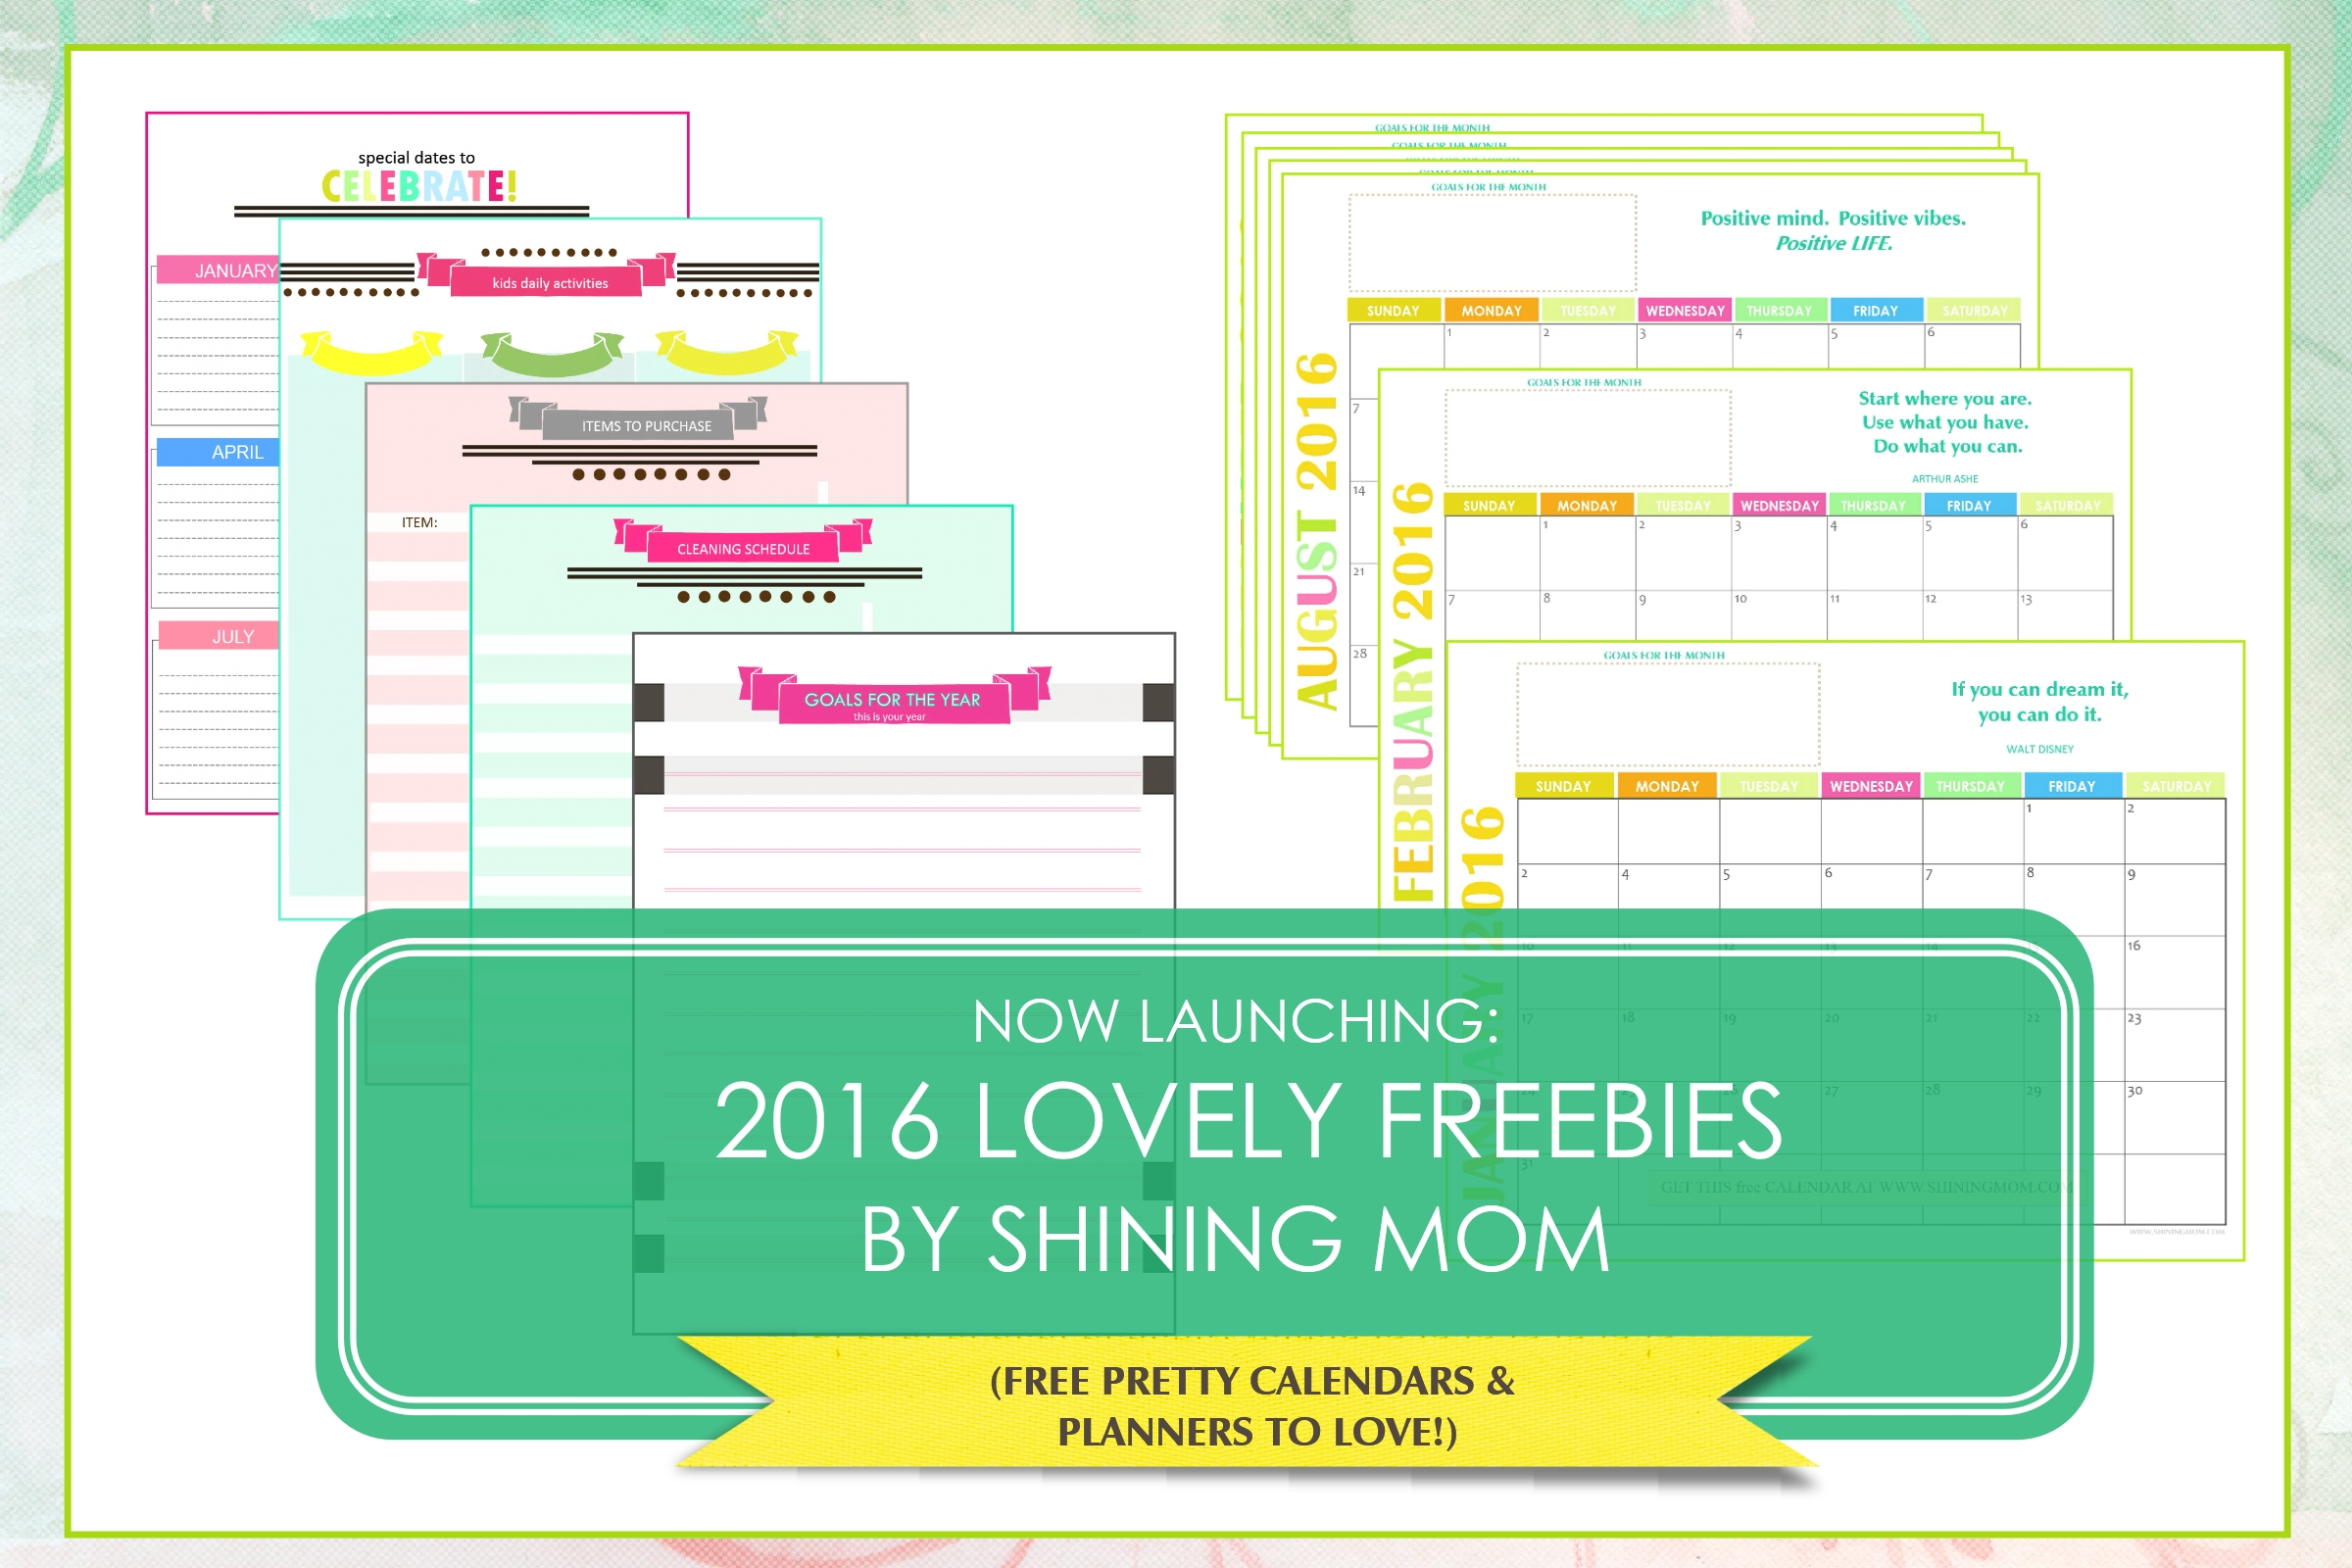 2016 freebies by shining mom